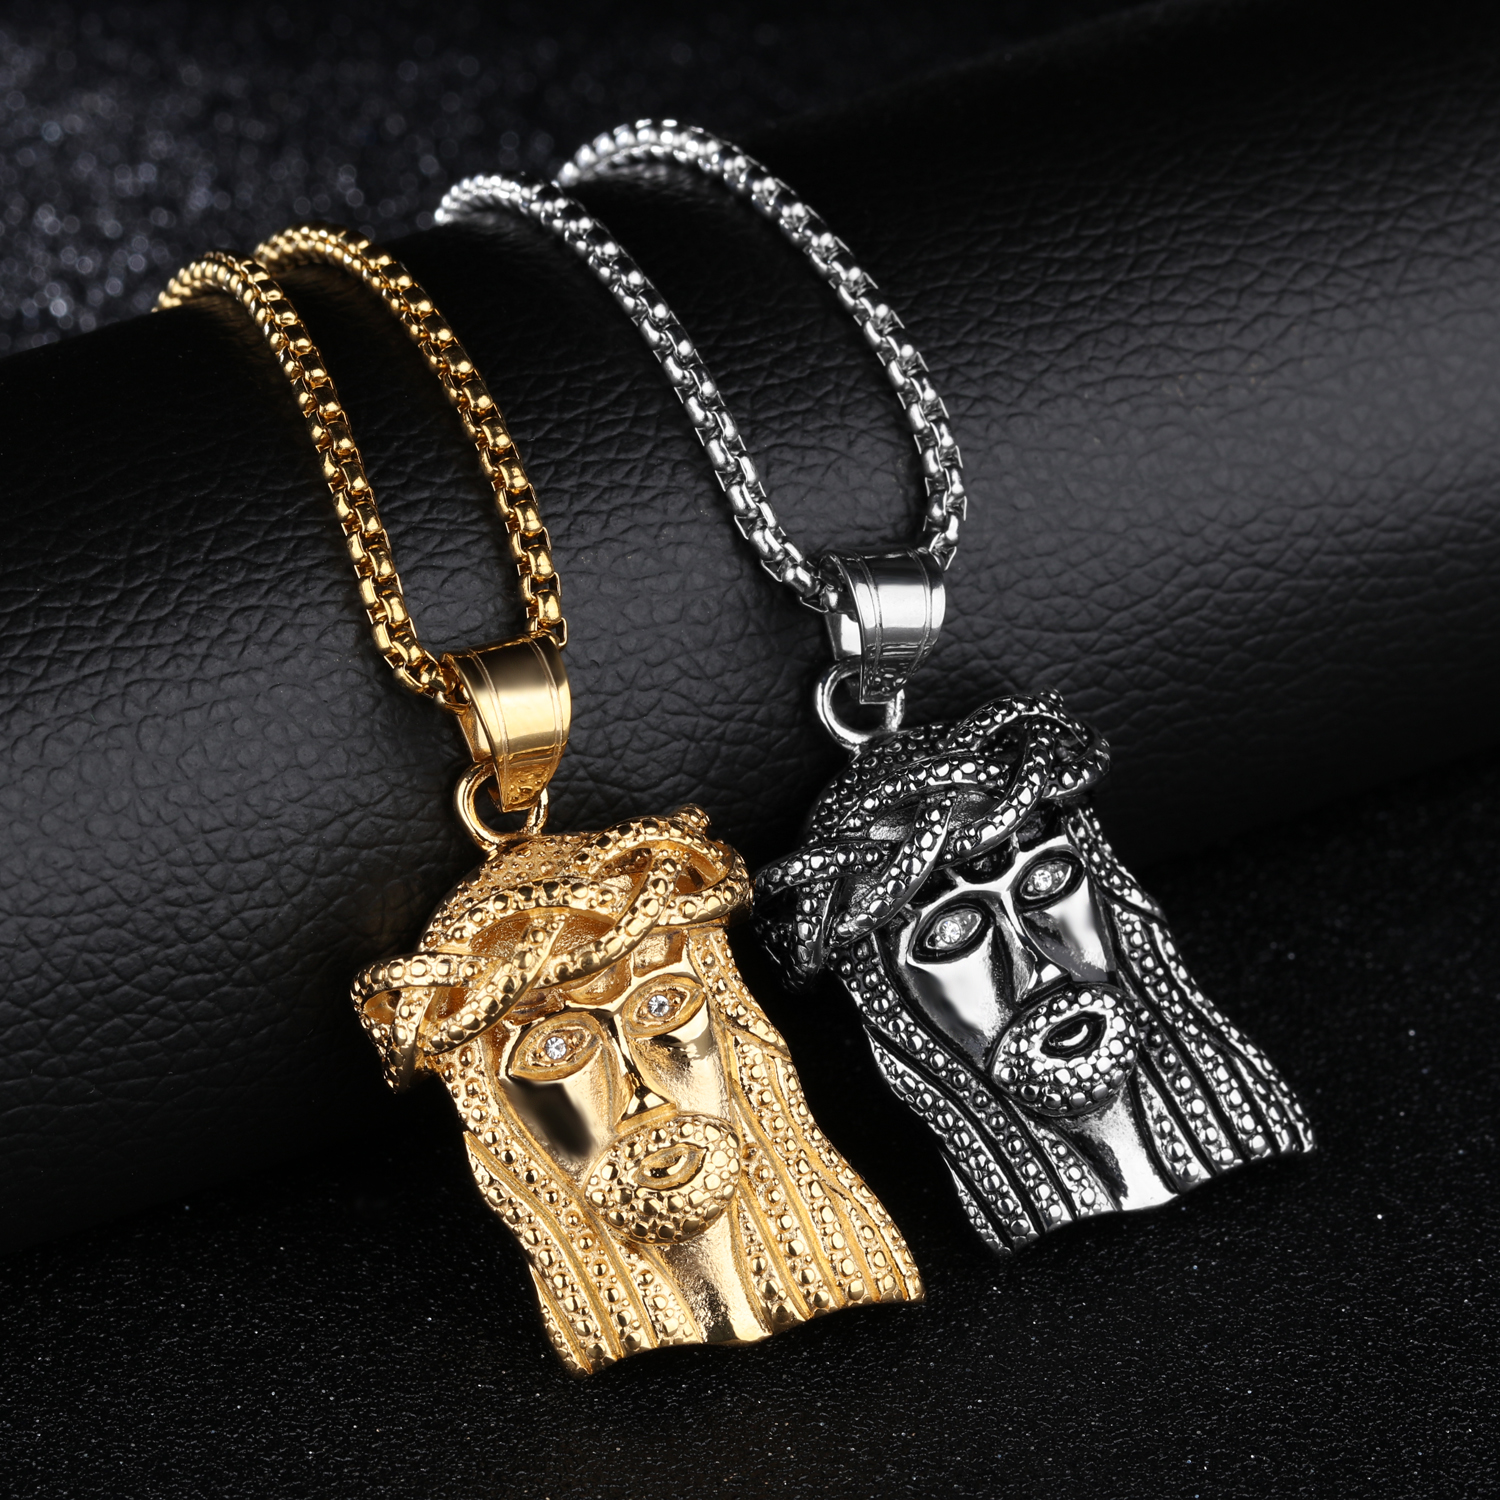 2018 Hot sale High Quality Vintage bling Zircon Surgical Steel Jesus Necklace Biker Fashion Jewelry For Men Steampunk Rock Style